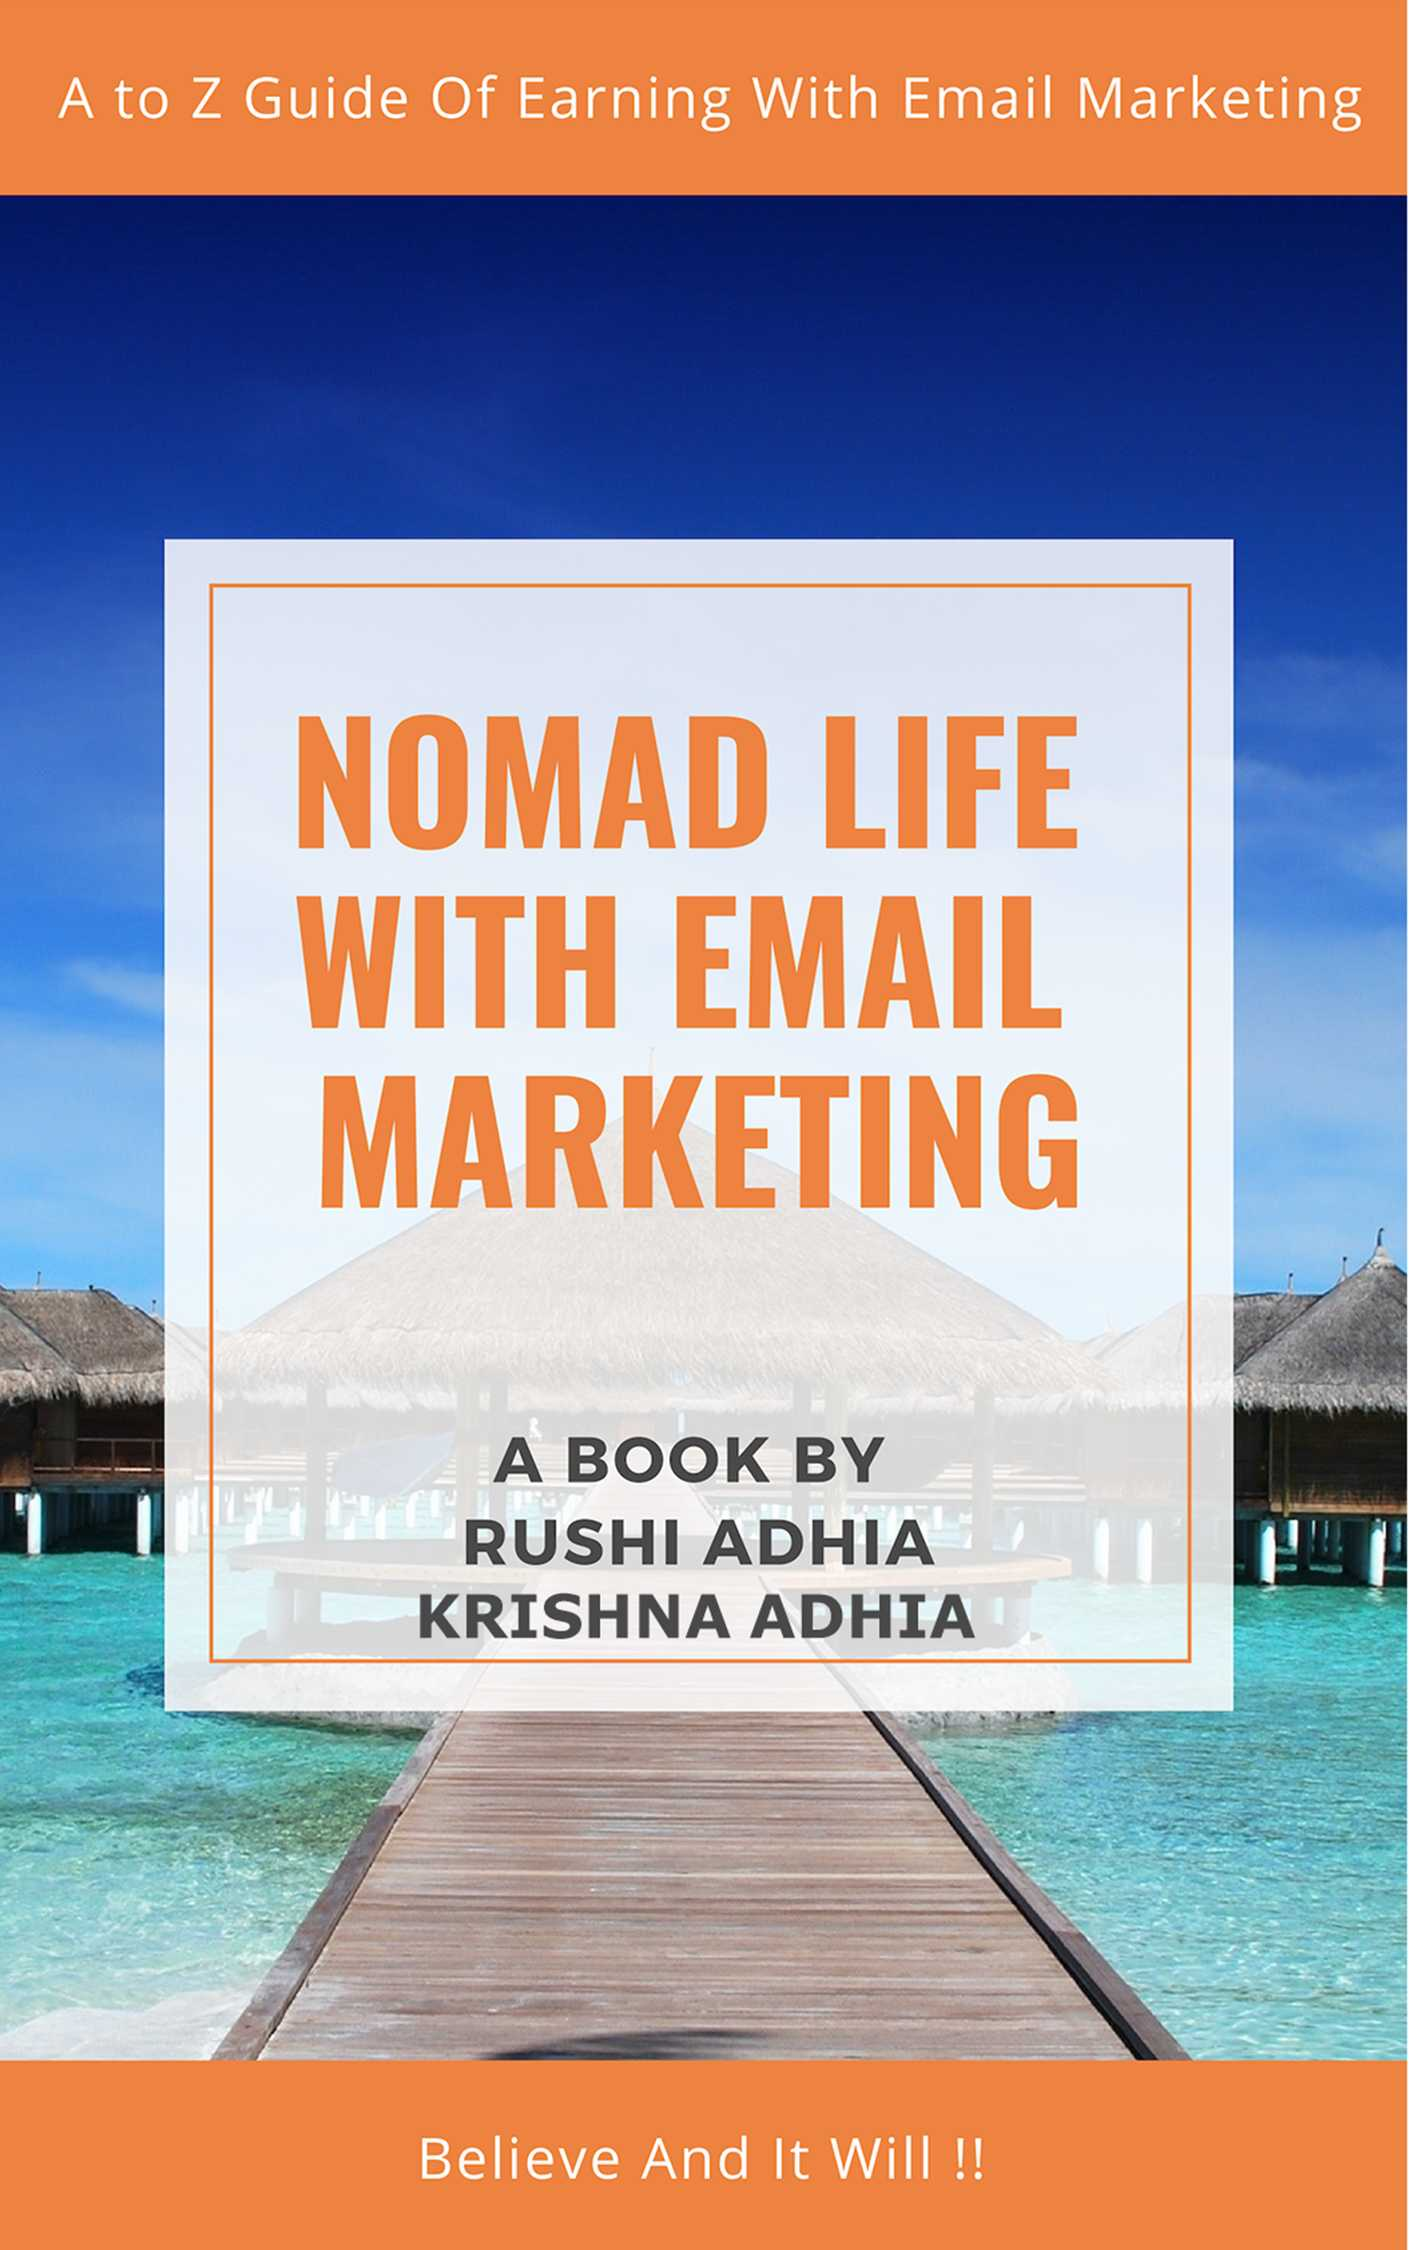 Email Marketing Book - Email Marketing Course Online - Learn Email Marketing Step by Step - How Can I Learn Email Marketing - Income By Email - Nomad Life With Email Marketing - Front Cover